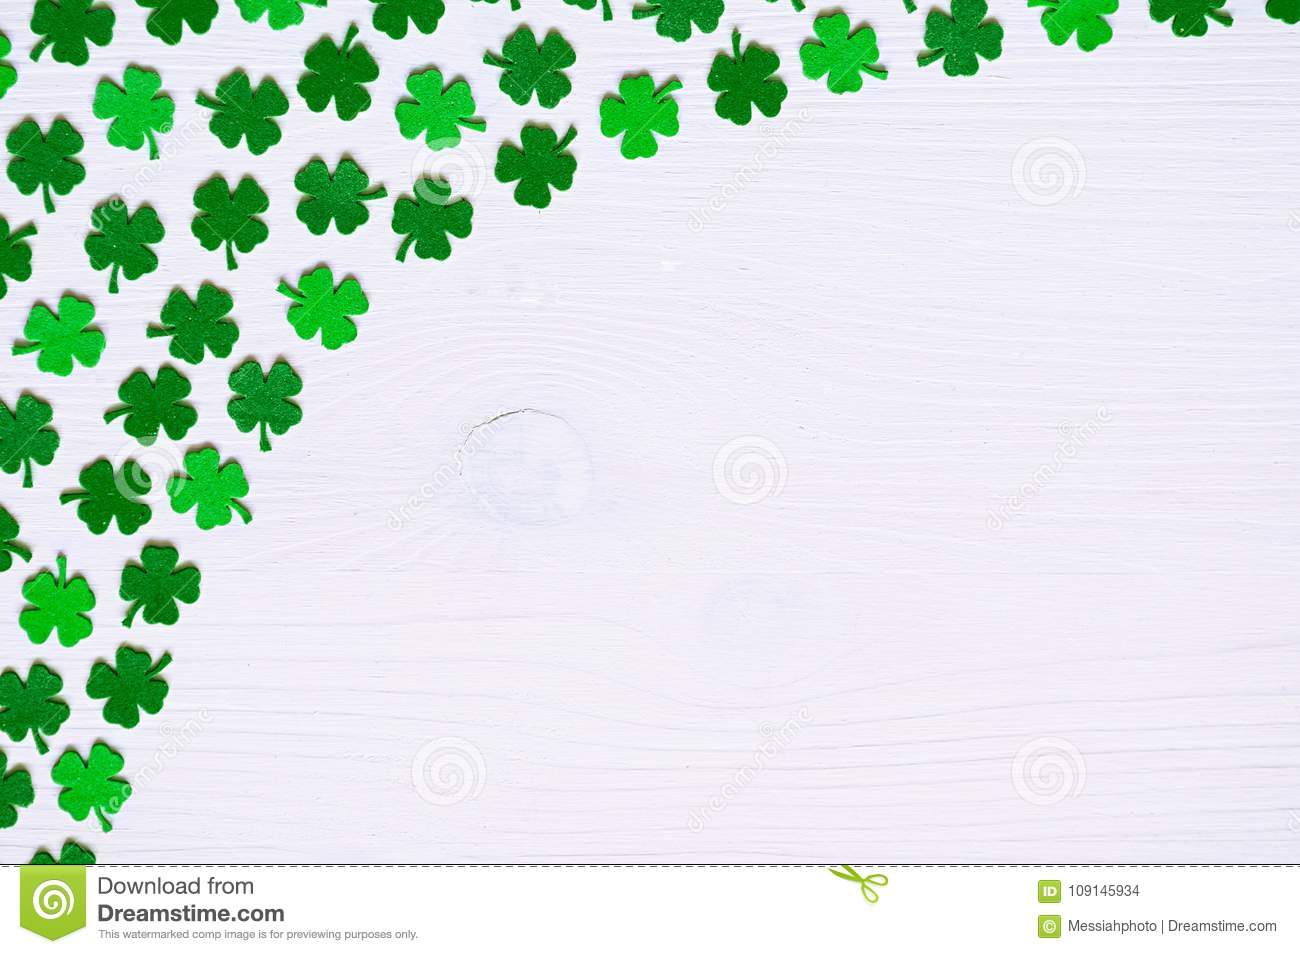 St Patricks Day background - one side curved border of green quatrefoils on the white wooden surface